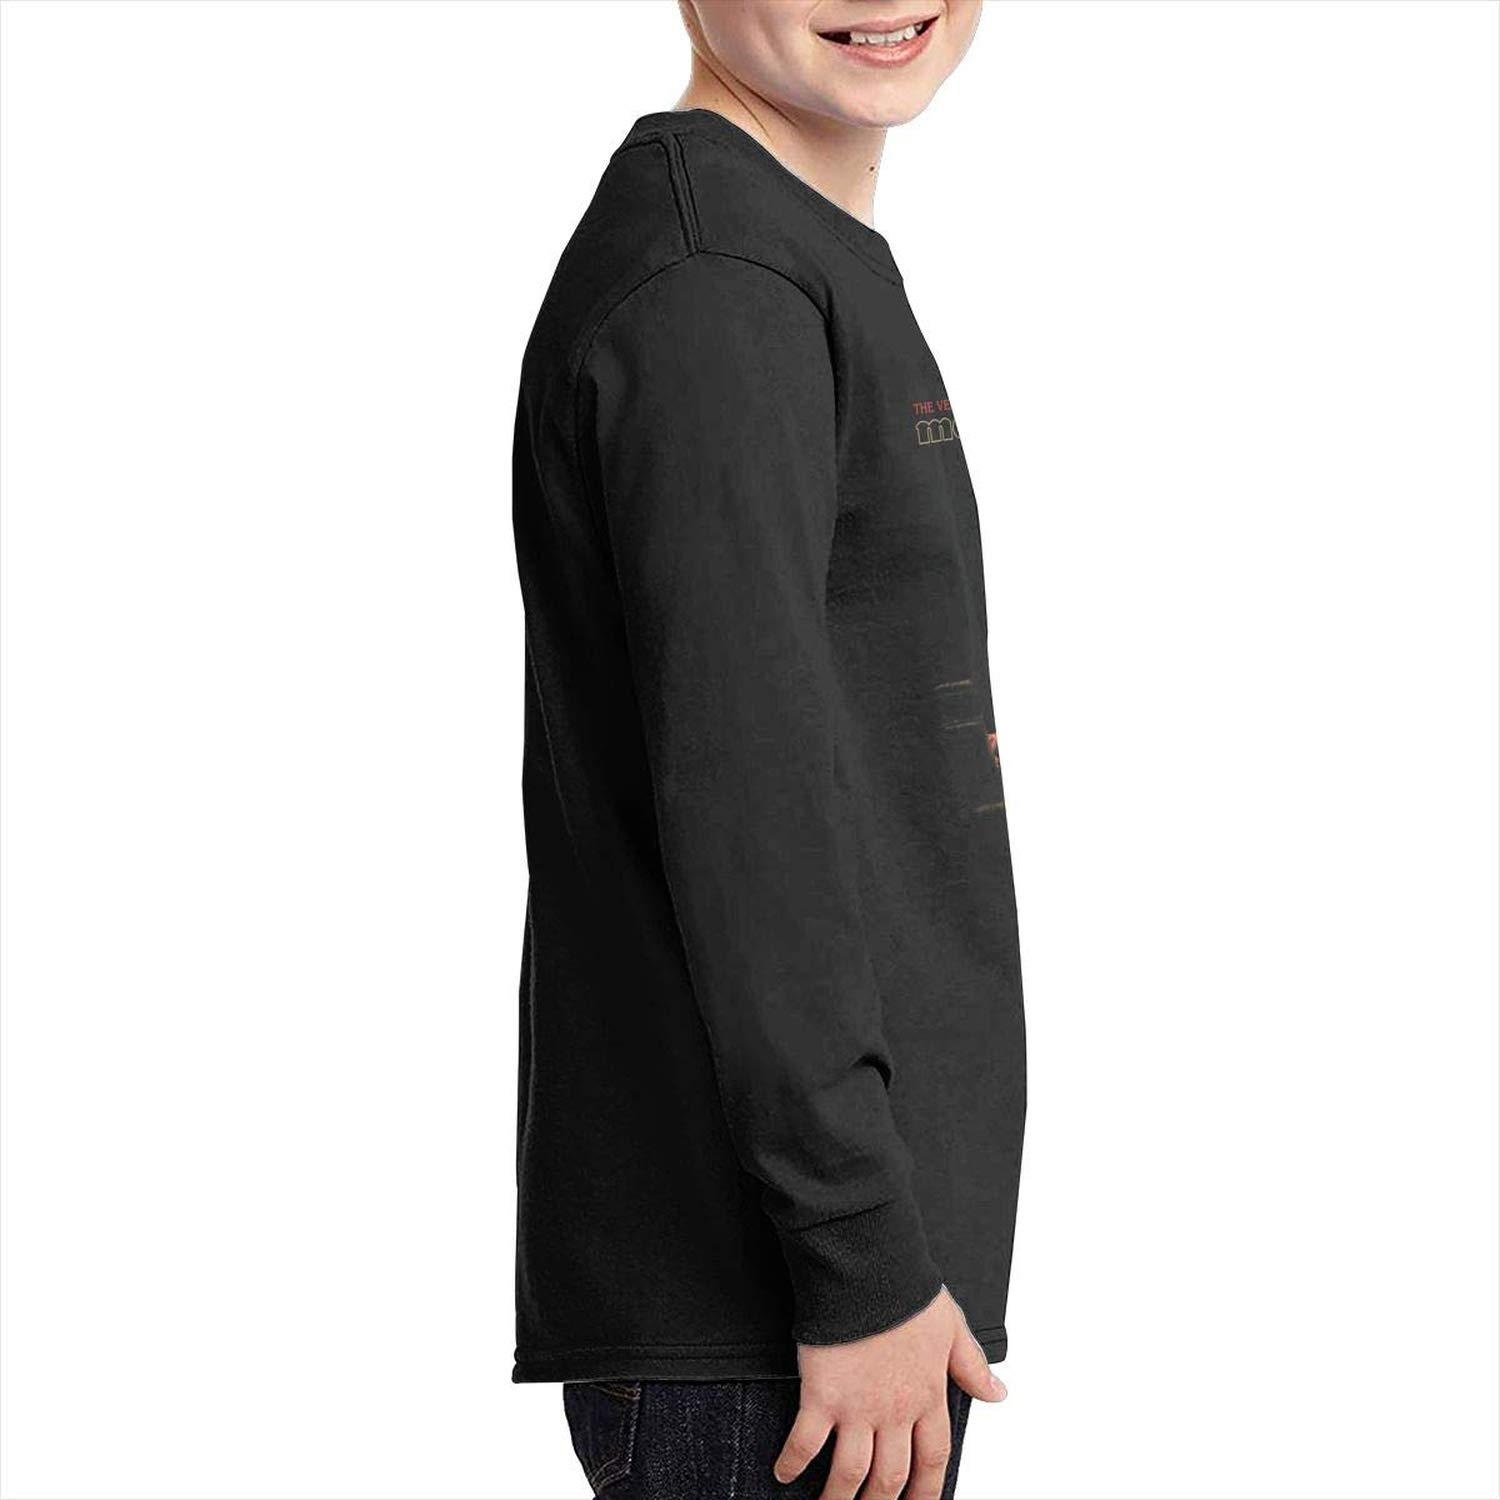 To-night The Very Best of Marvin Gaye Cotton Youth Girls Boys Long Sleeve T Shirt Funny Teenager Tees Black